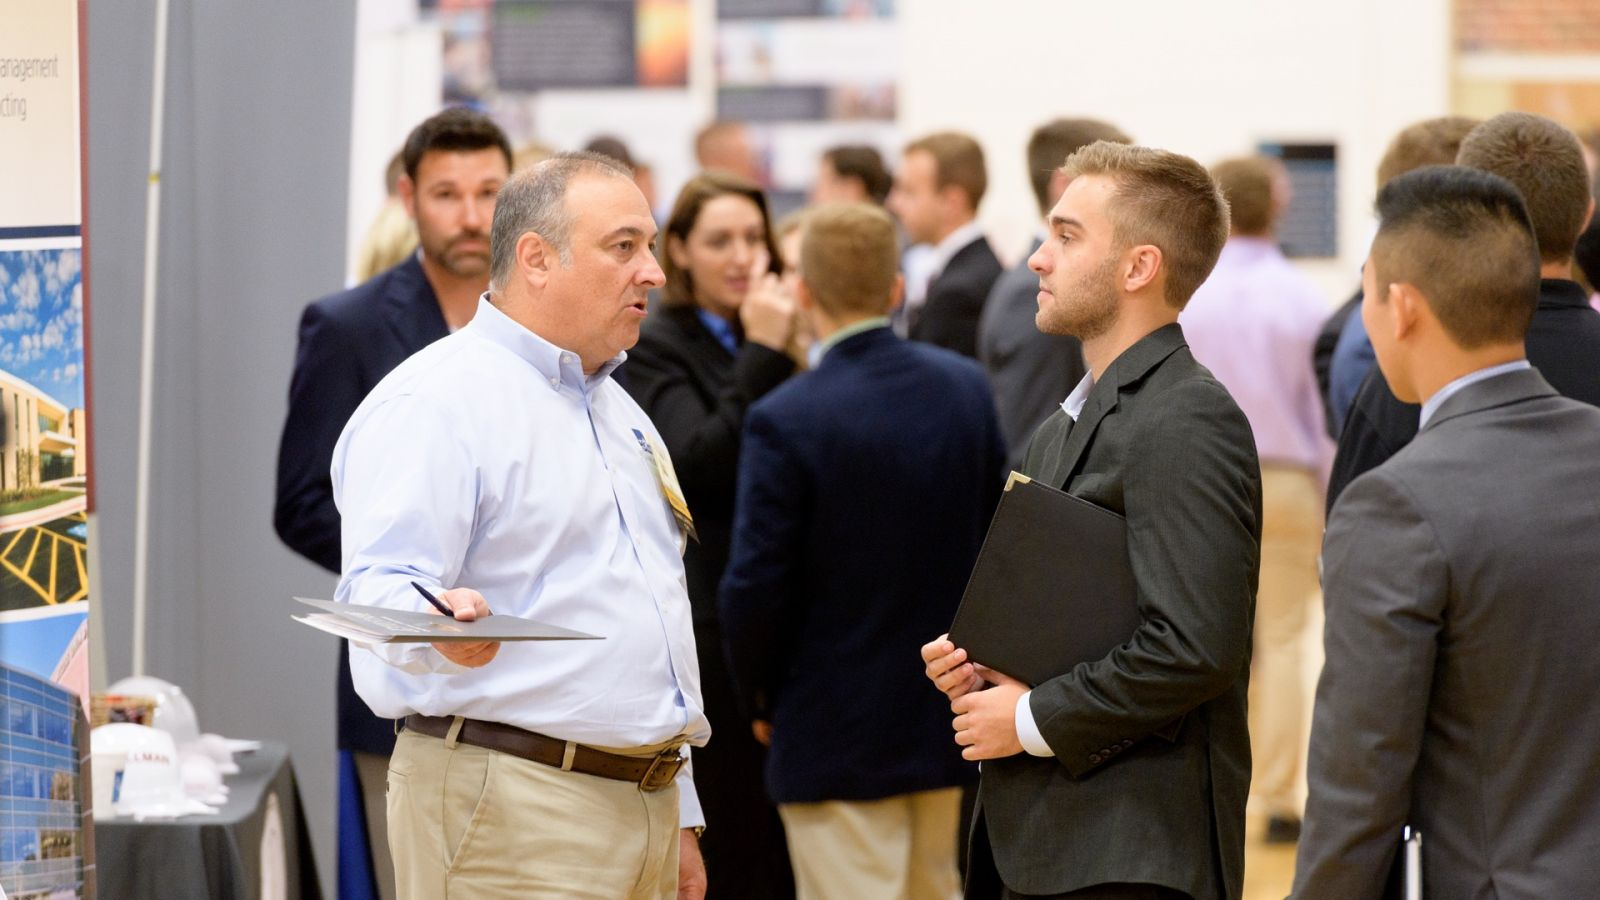 Nearly 800 students met representatives from 184 companies.